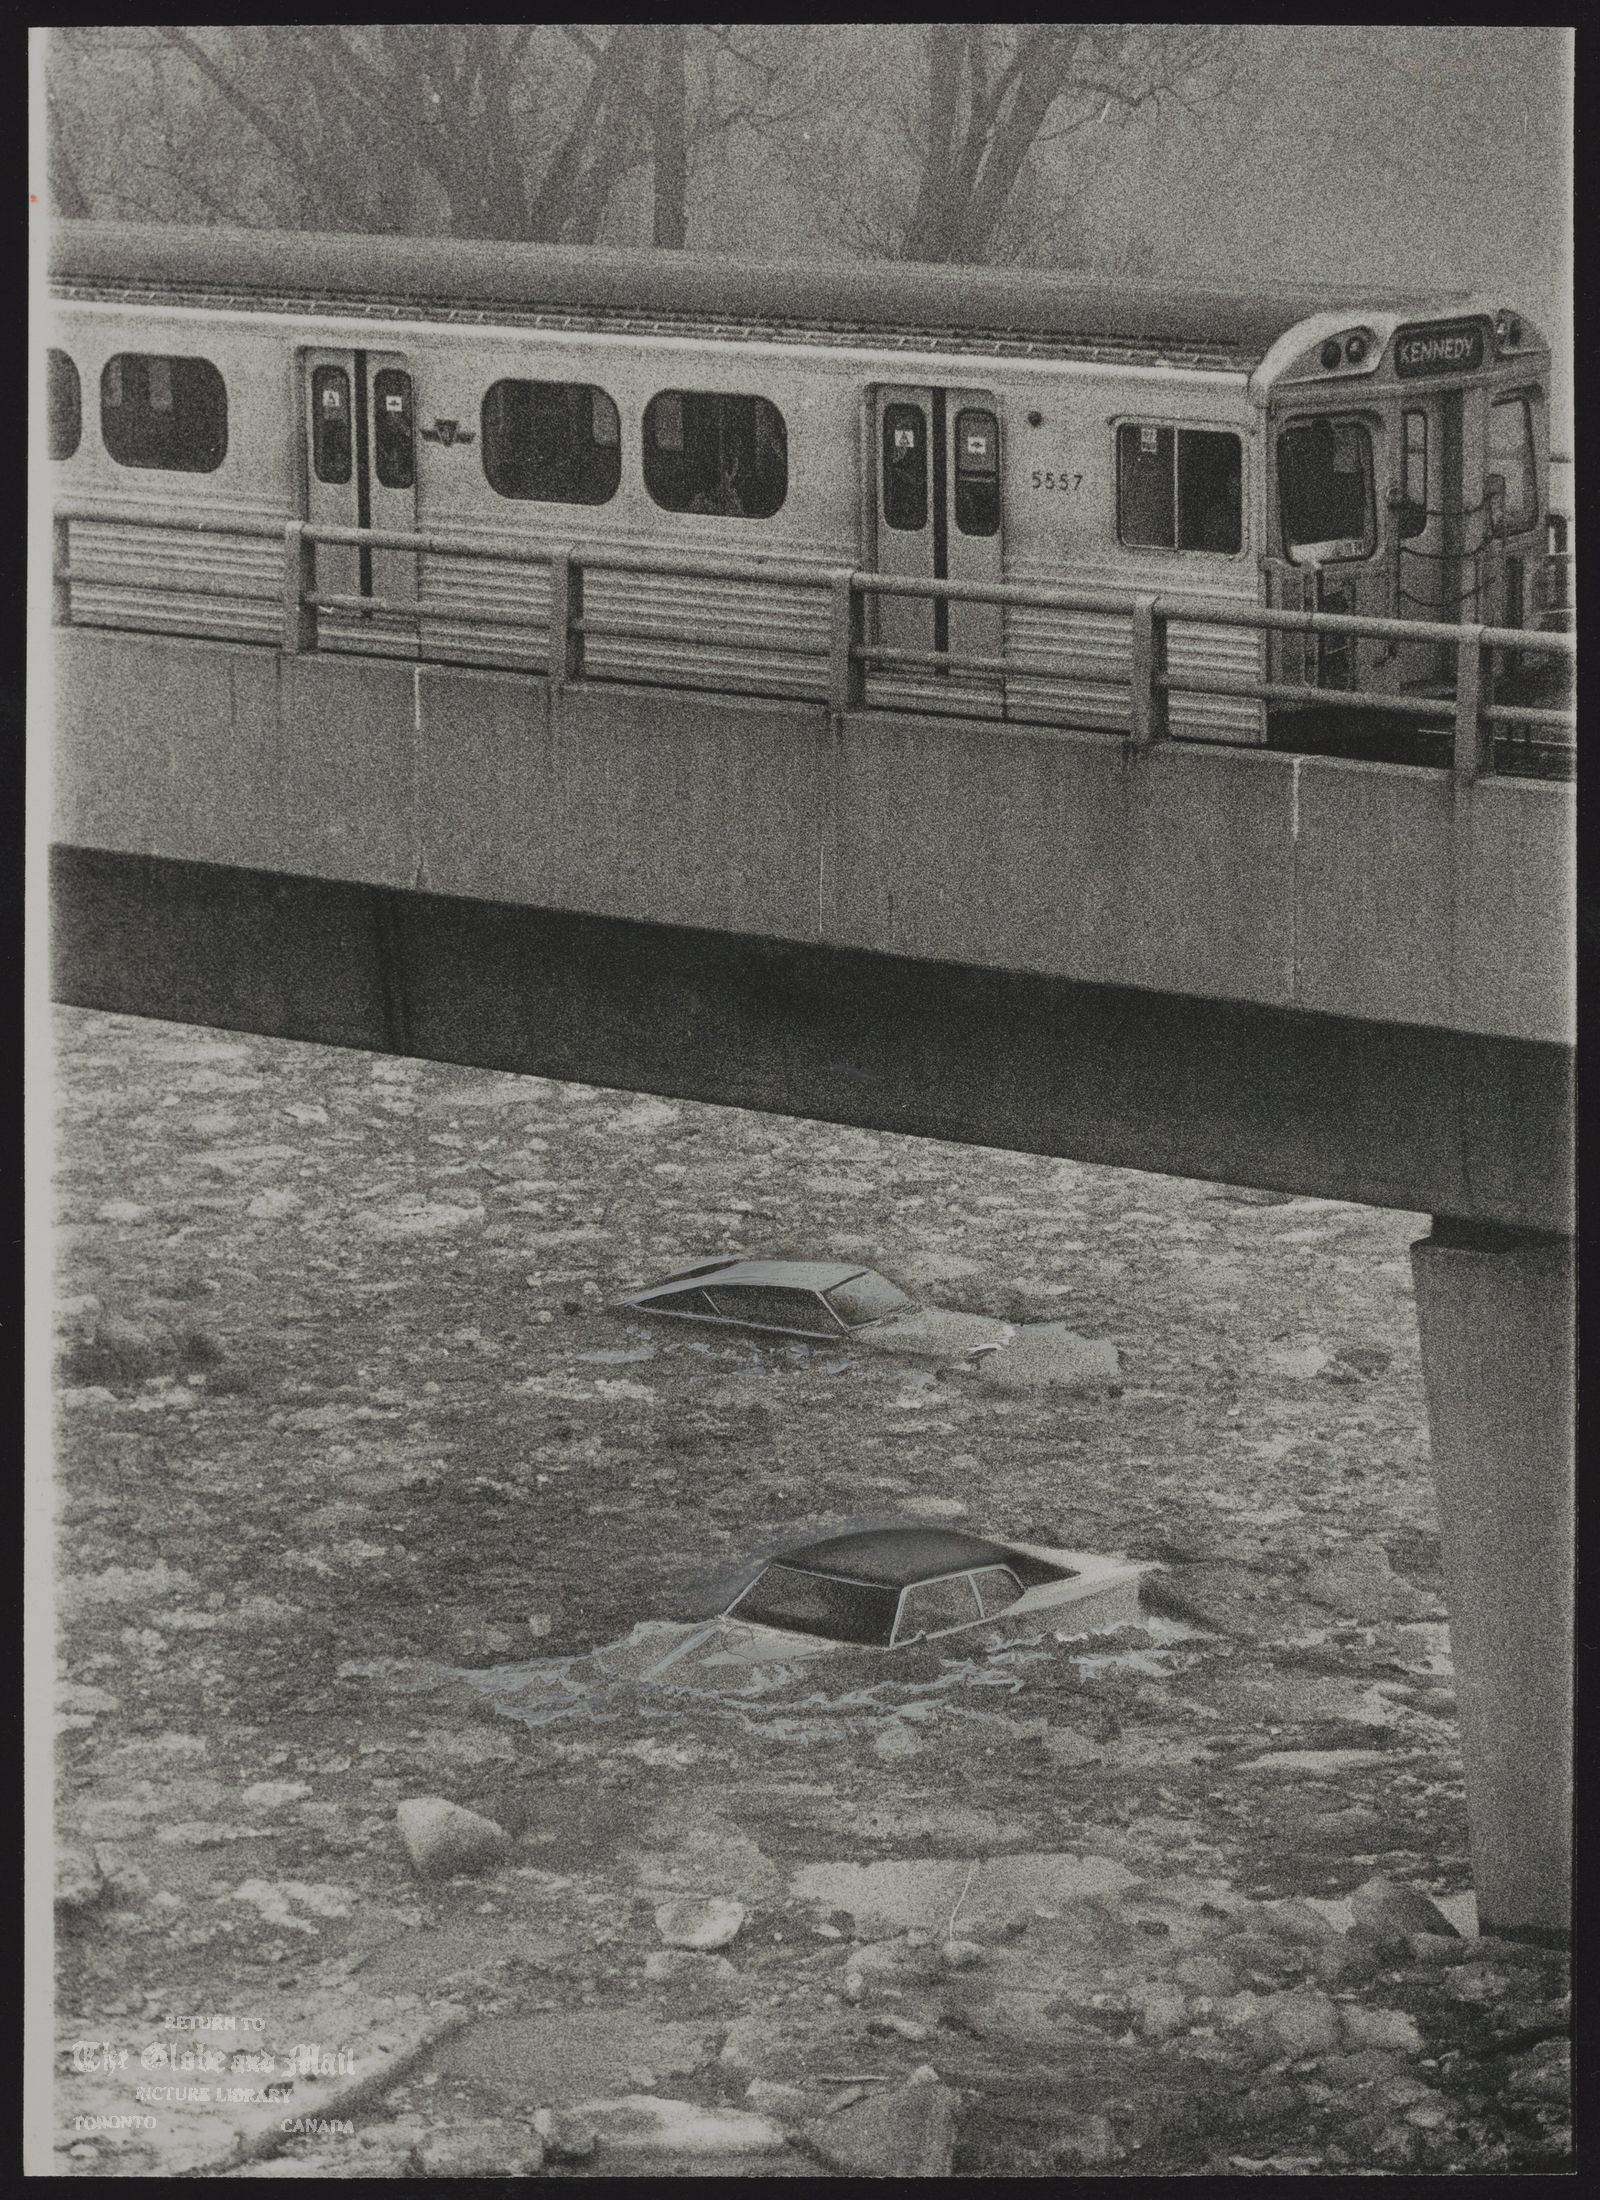 FLOODS Canada A subway train passes two cars almost submerged by ice and water in a parking lot at Toronto's Kings Mill Park. The early thaw caused the Humber River to flood its tanks.